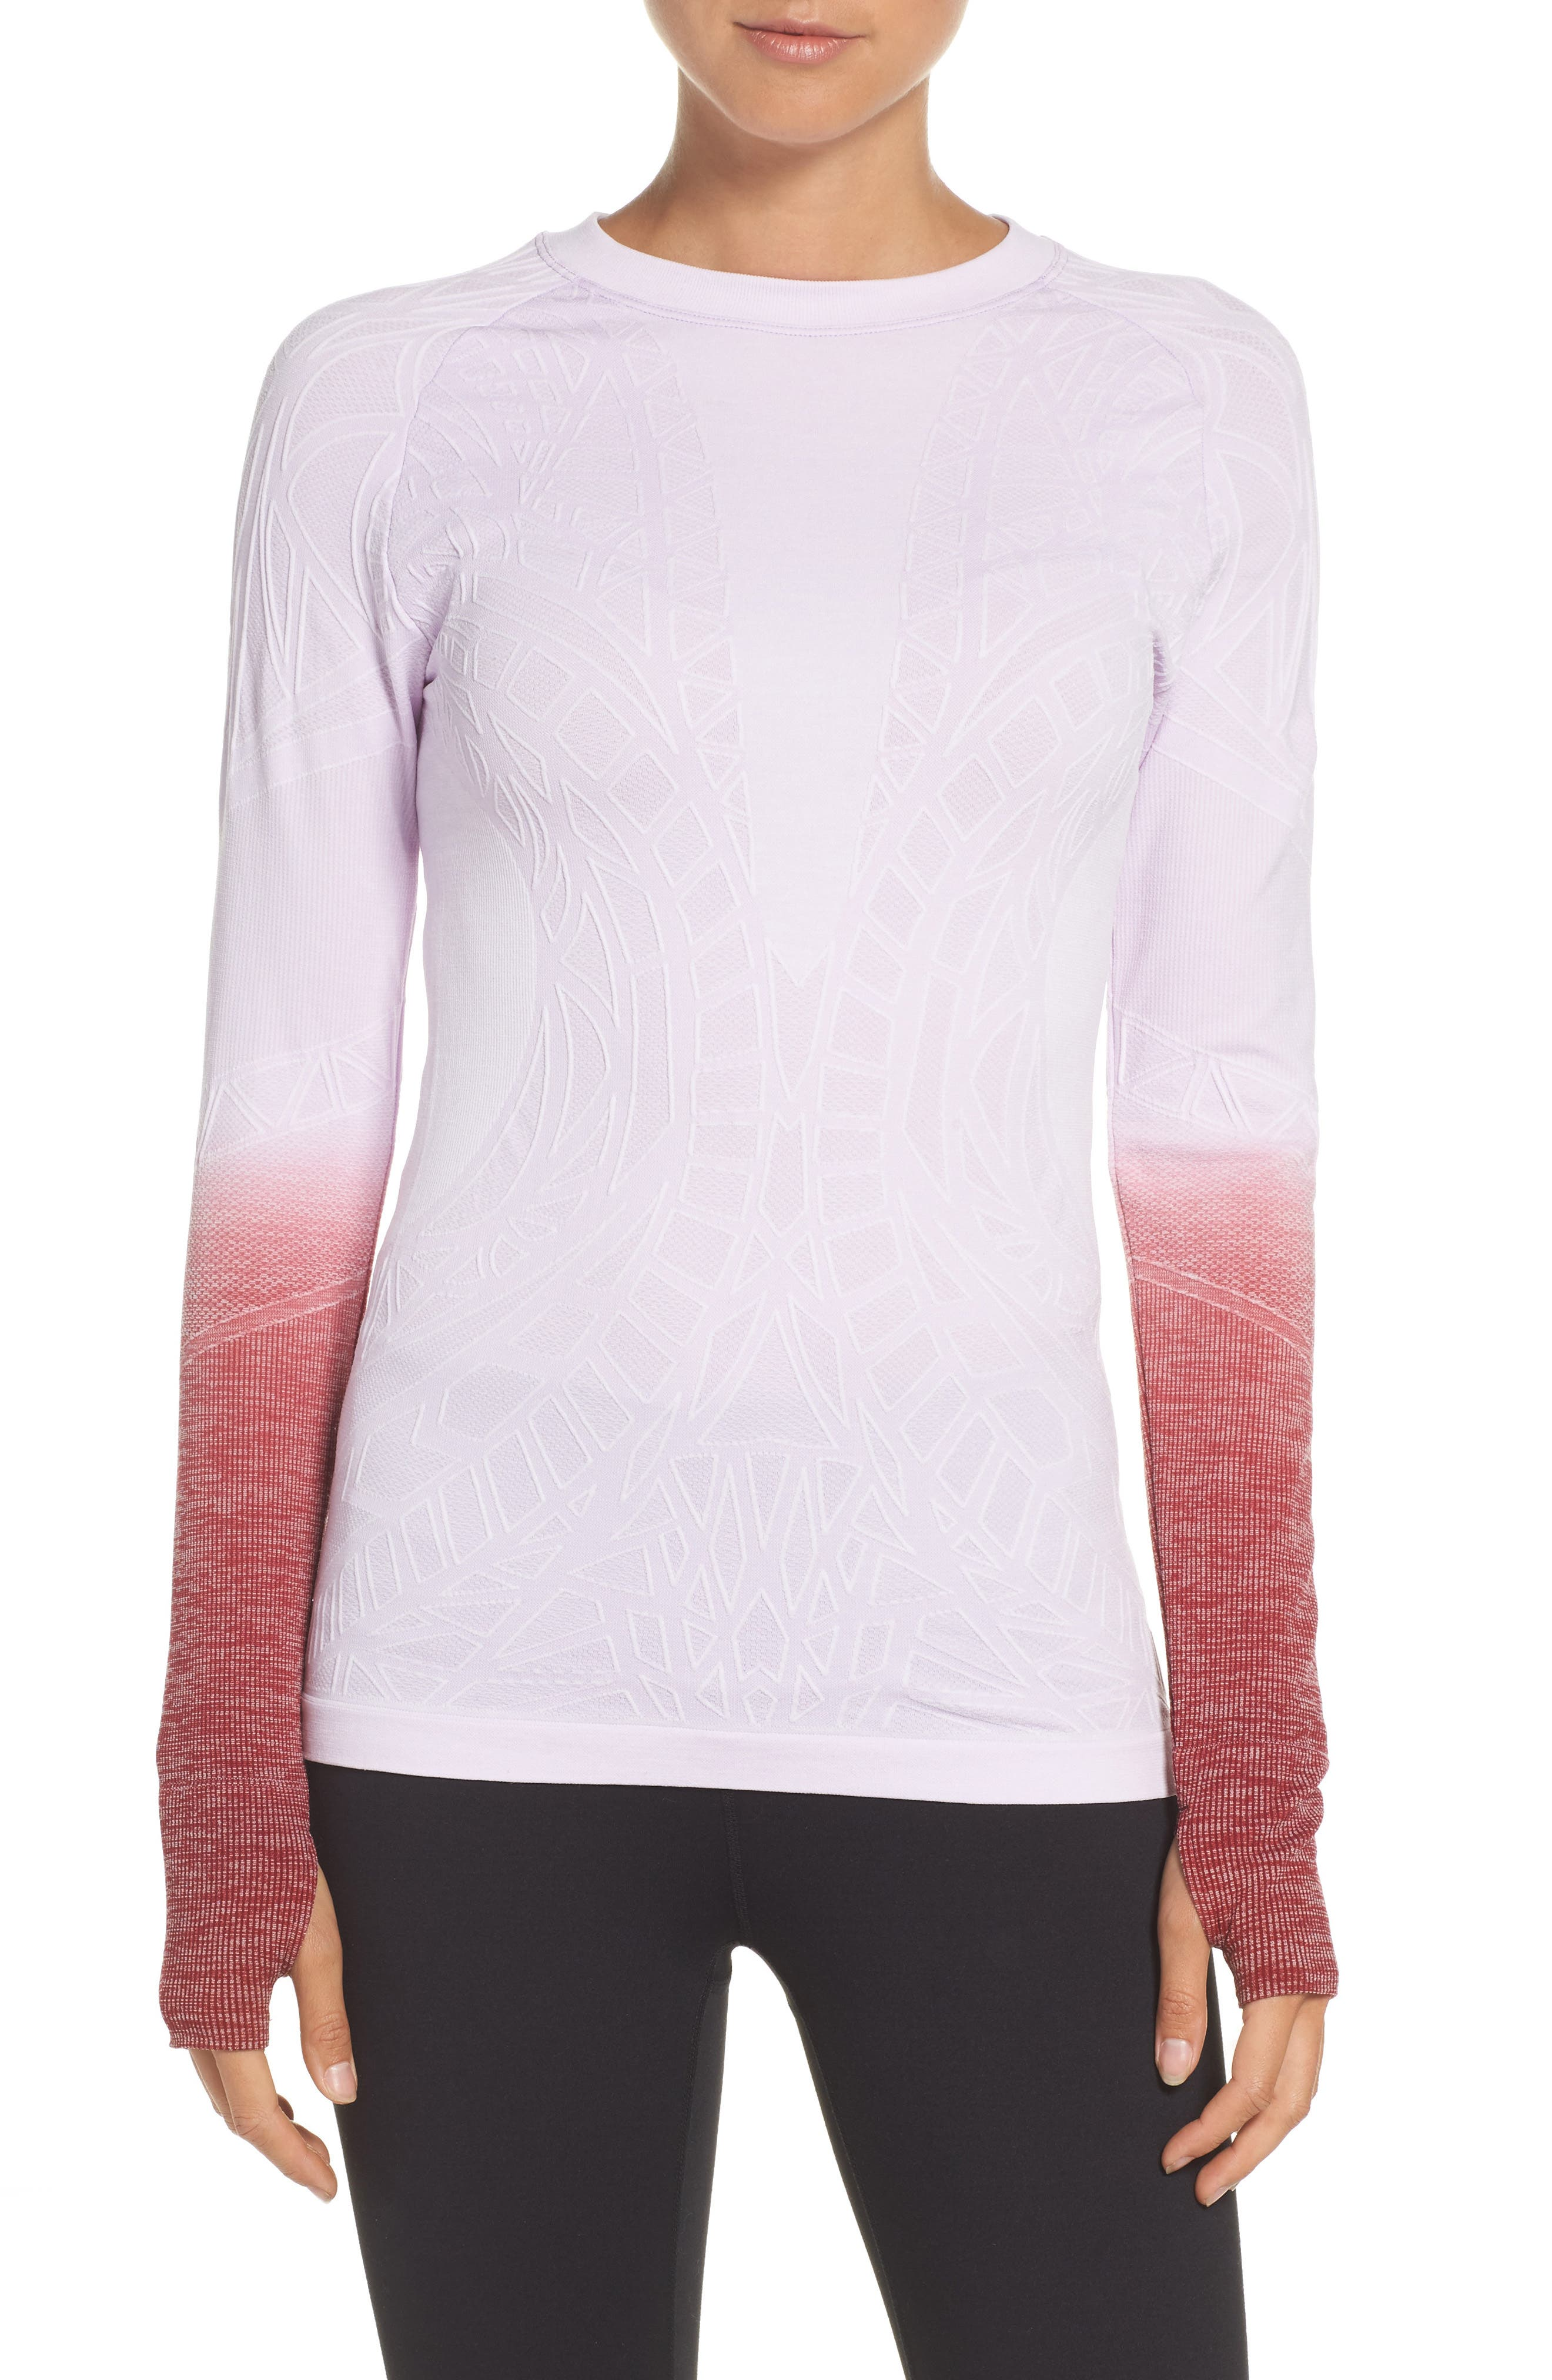 Revolution Running Teee,                         Main,                         color, Pastel Lilac/ White/ Zinfandel